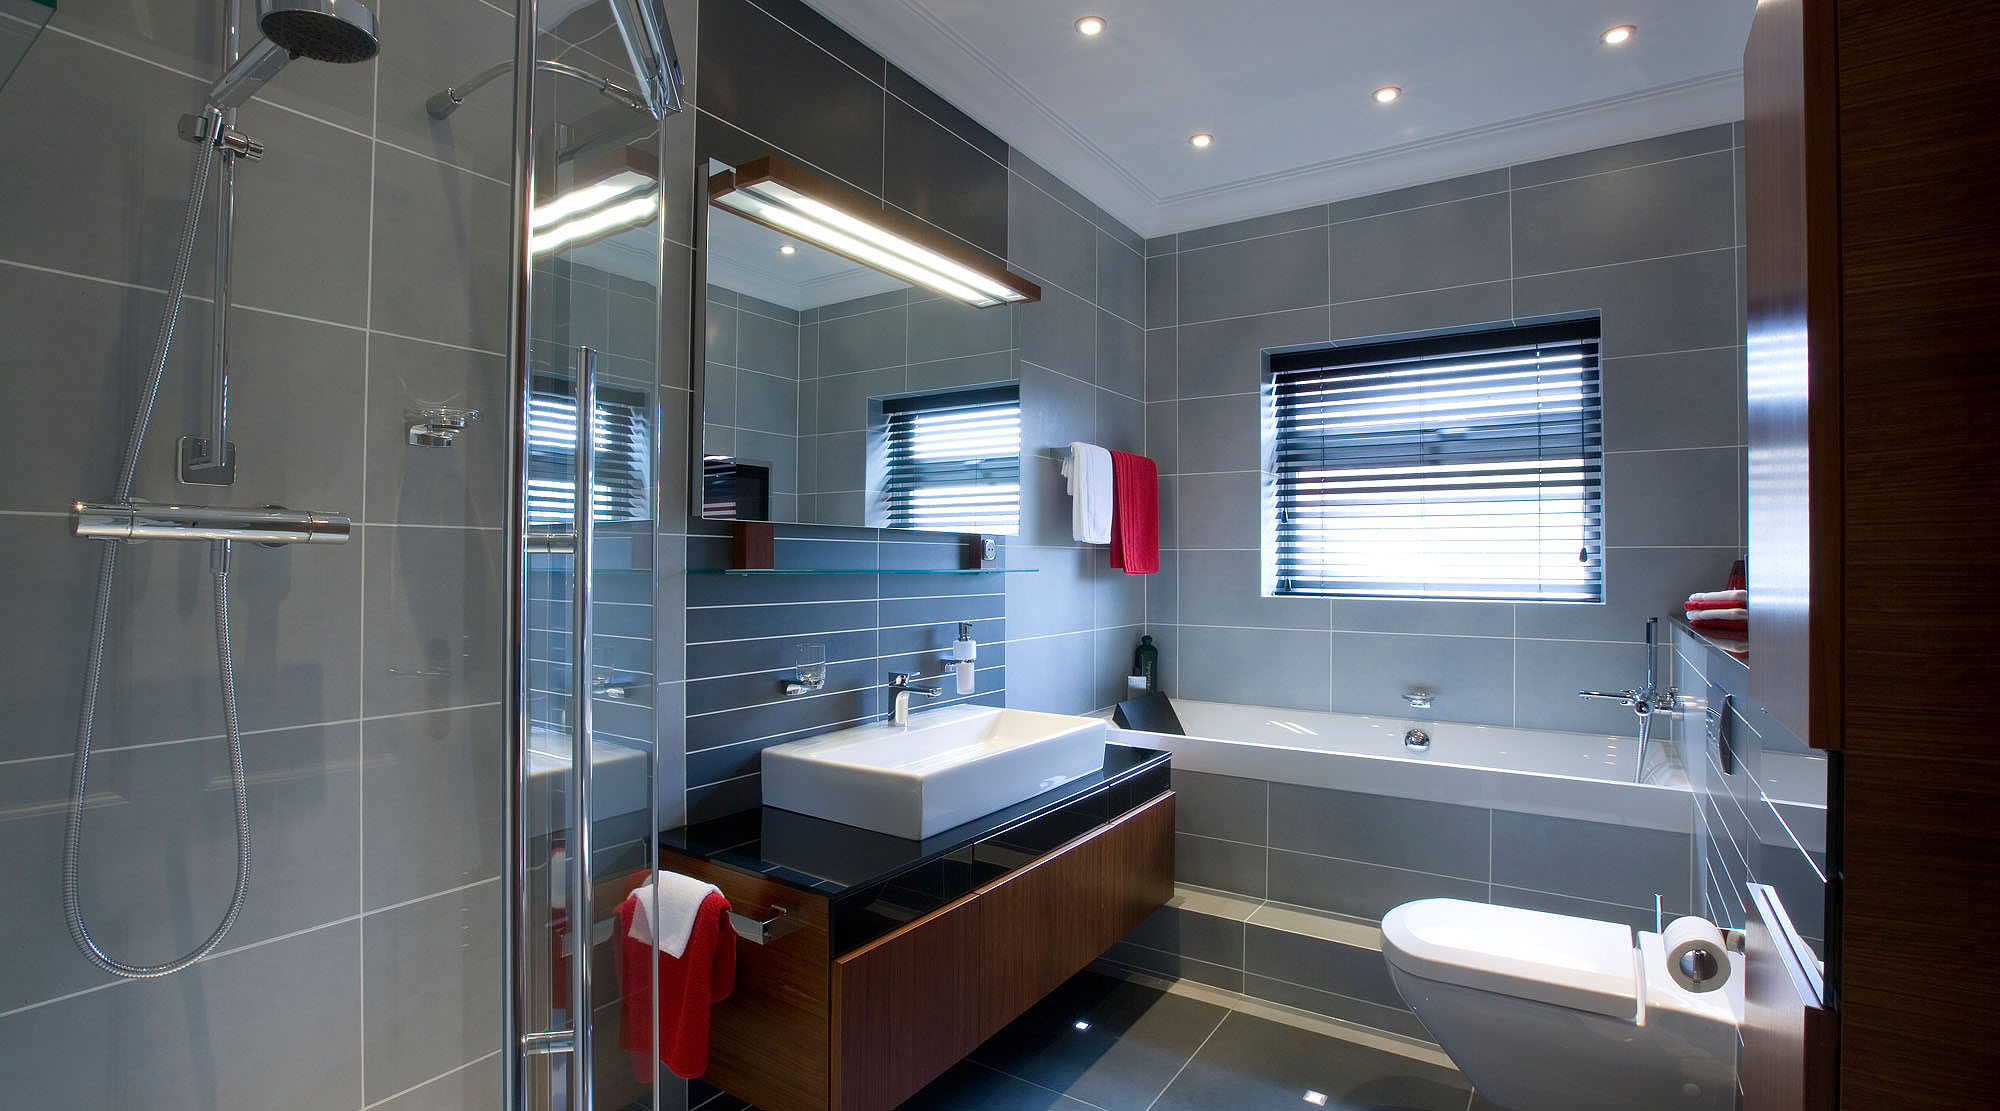 Bathroom with red accessories